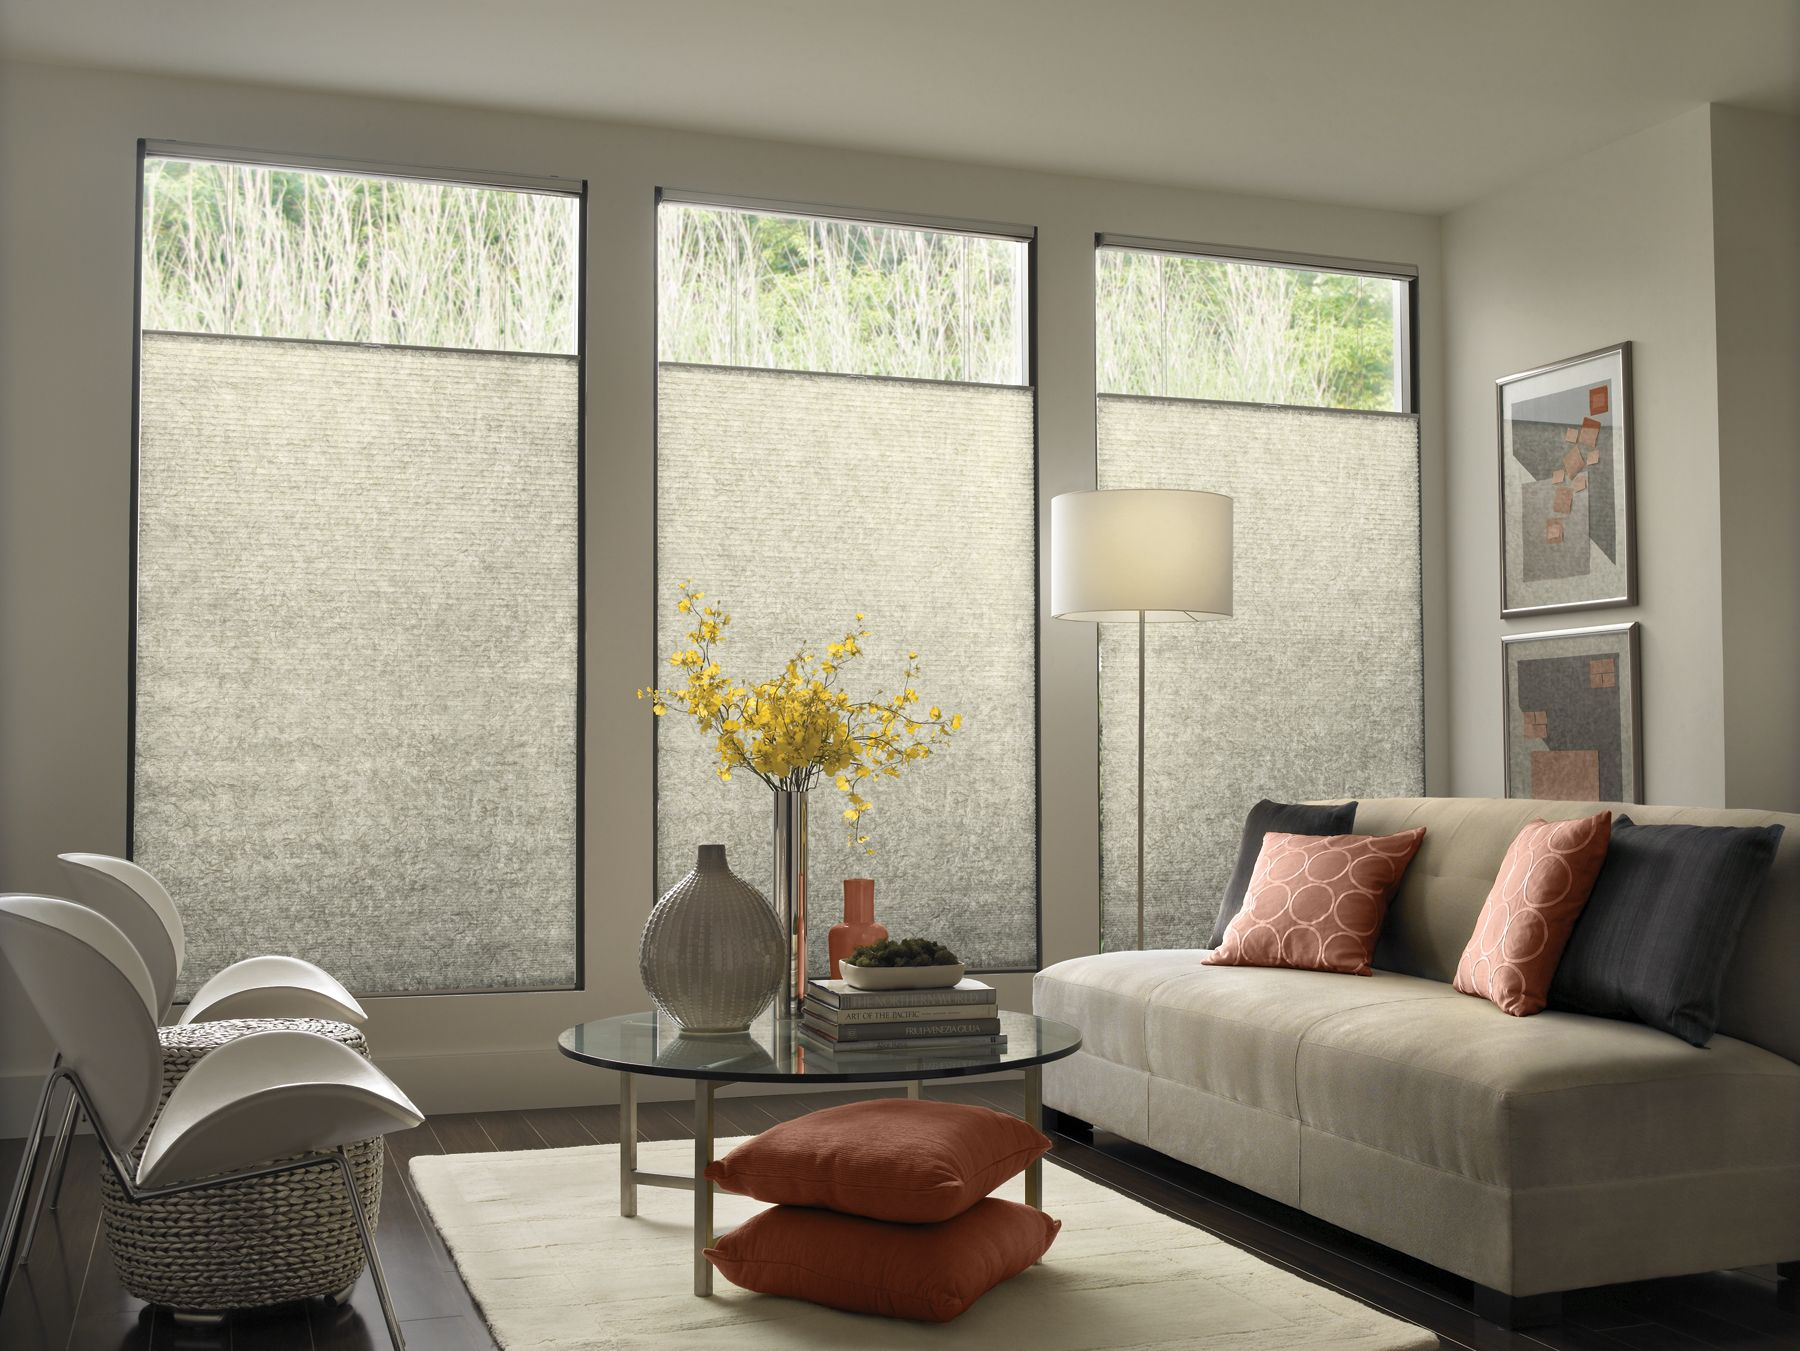 Large Living Room Window Ideas Modern Contemporary Window Treatments With Mid Century Modern Sofa .